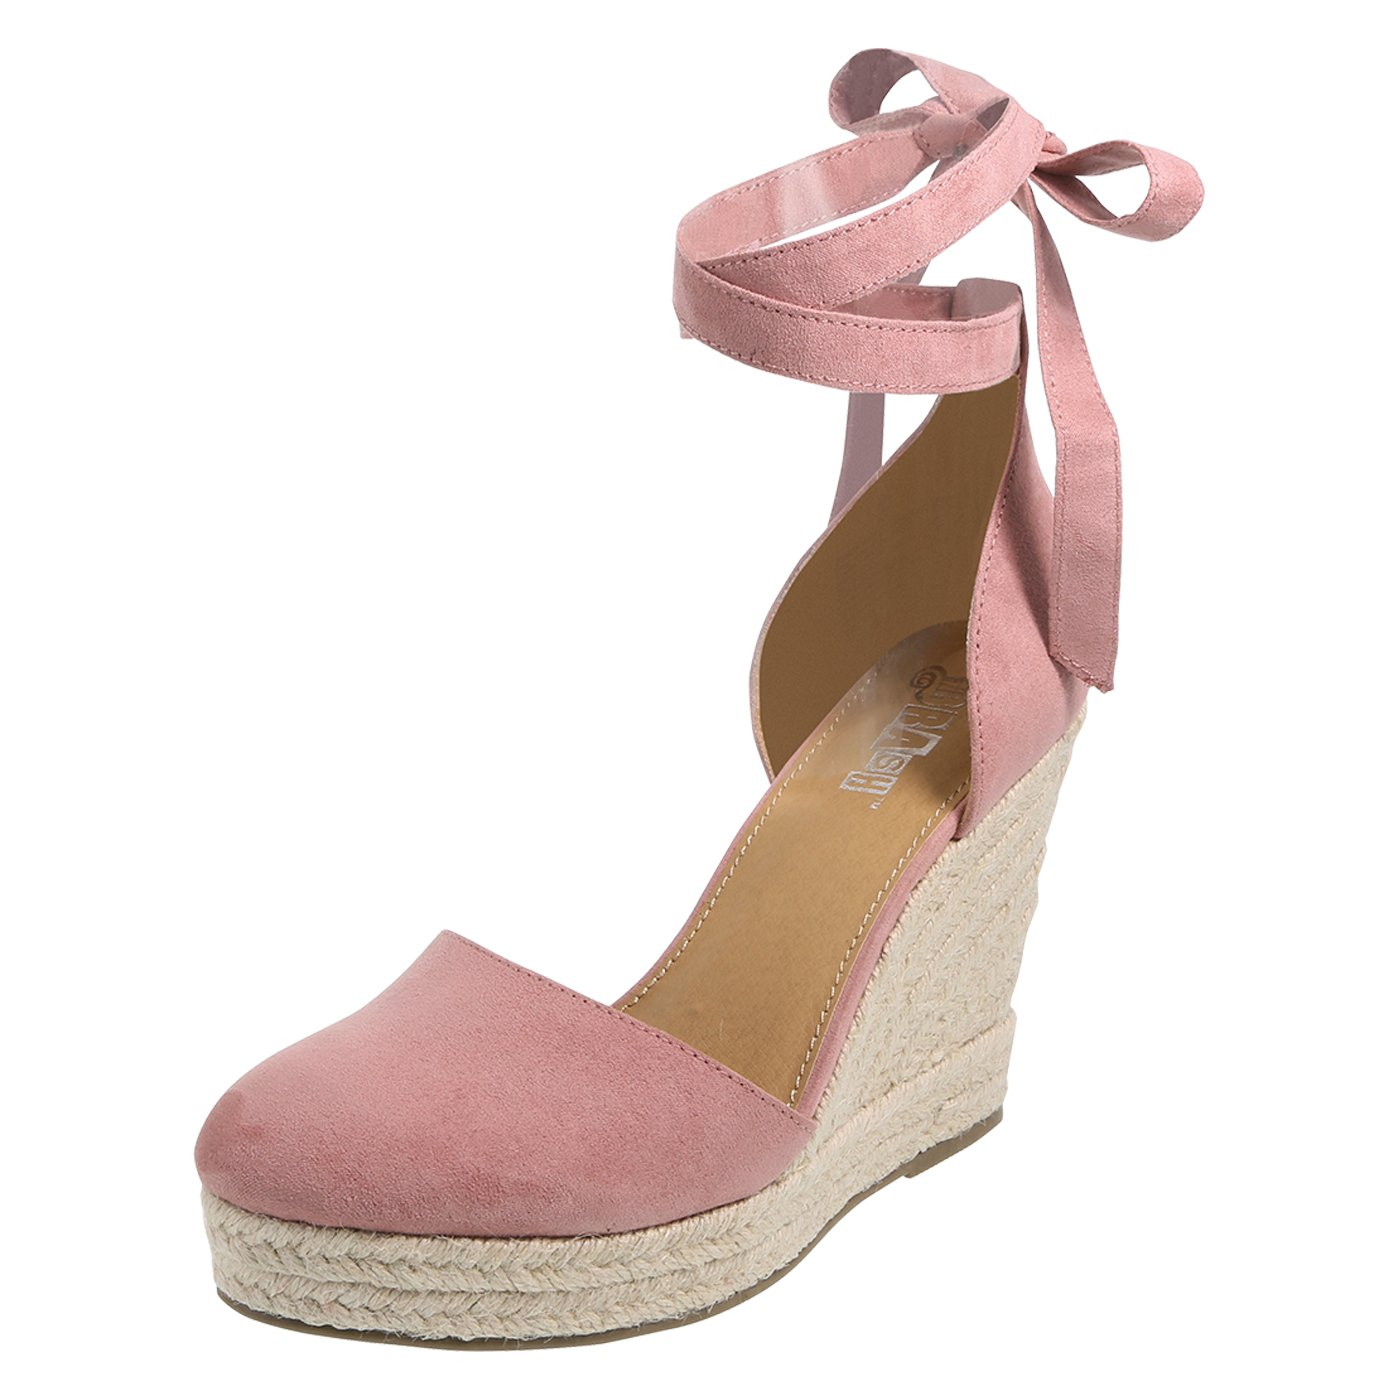 68aefffa8d9 Brash Mauve Women's Escape Espadrille Wedge Sandal 13 Regular ...